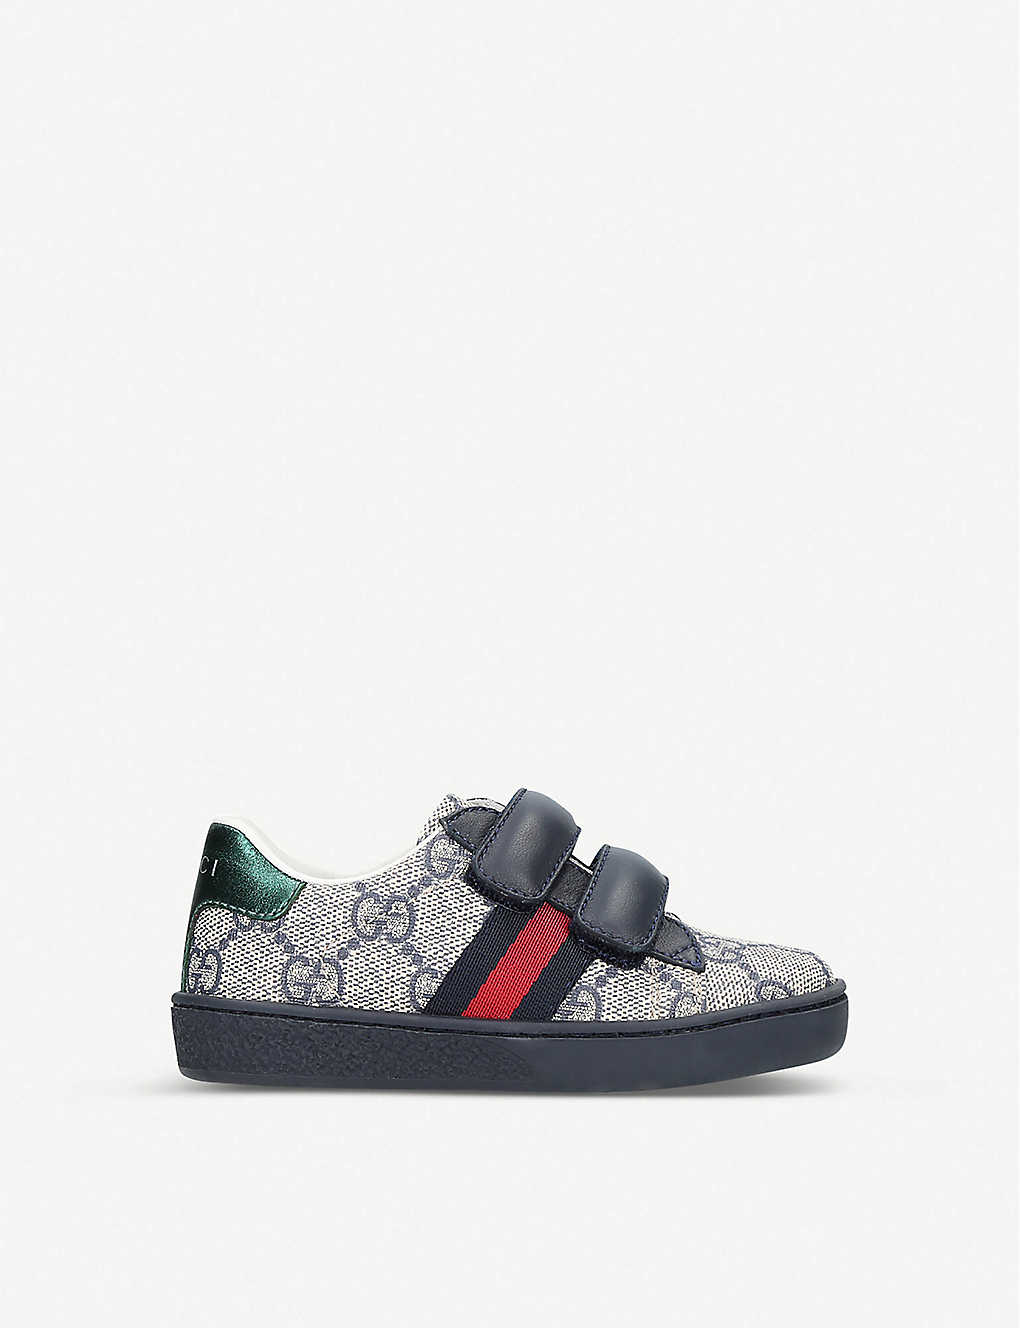 GUCCI: New Ace VL trainers 1-4 years